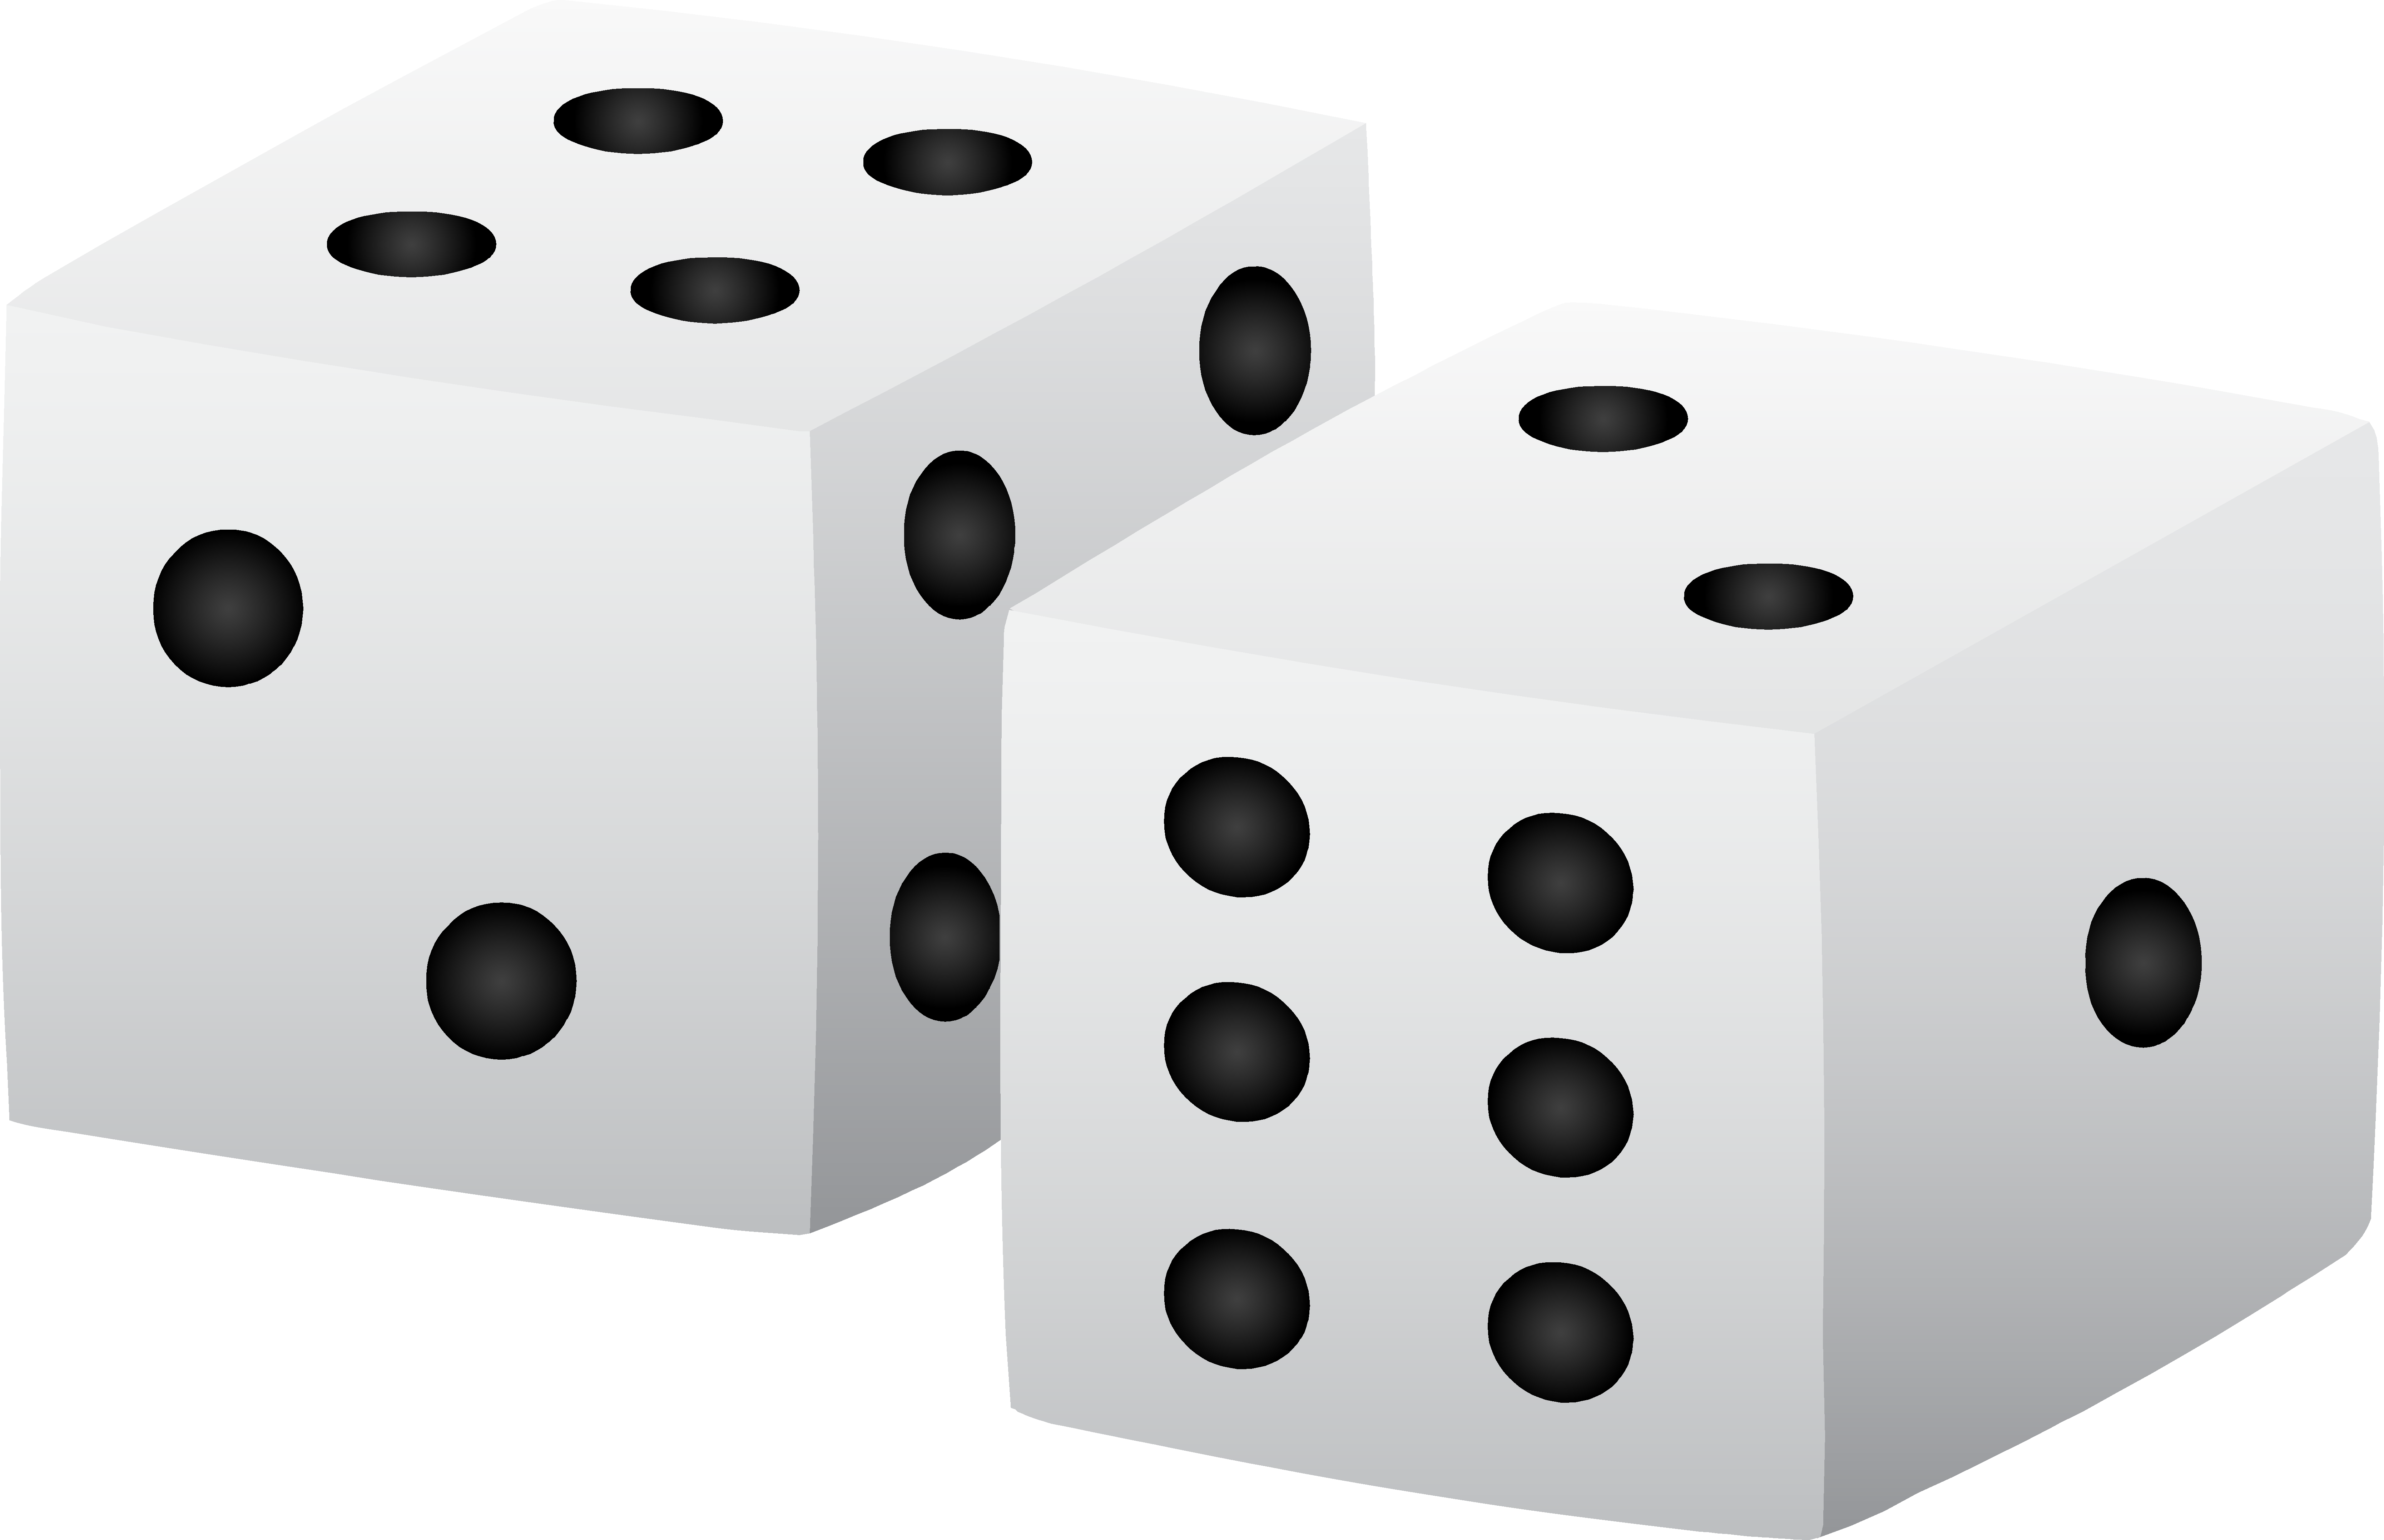 Dice hard object graphics. Square clipart solid